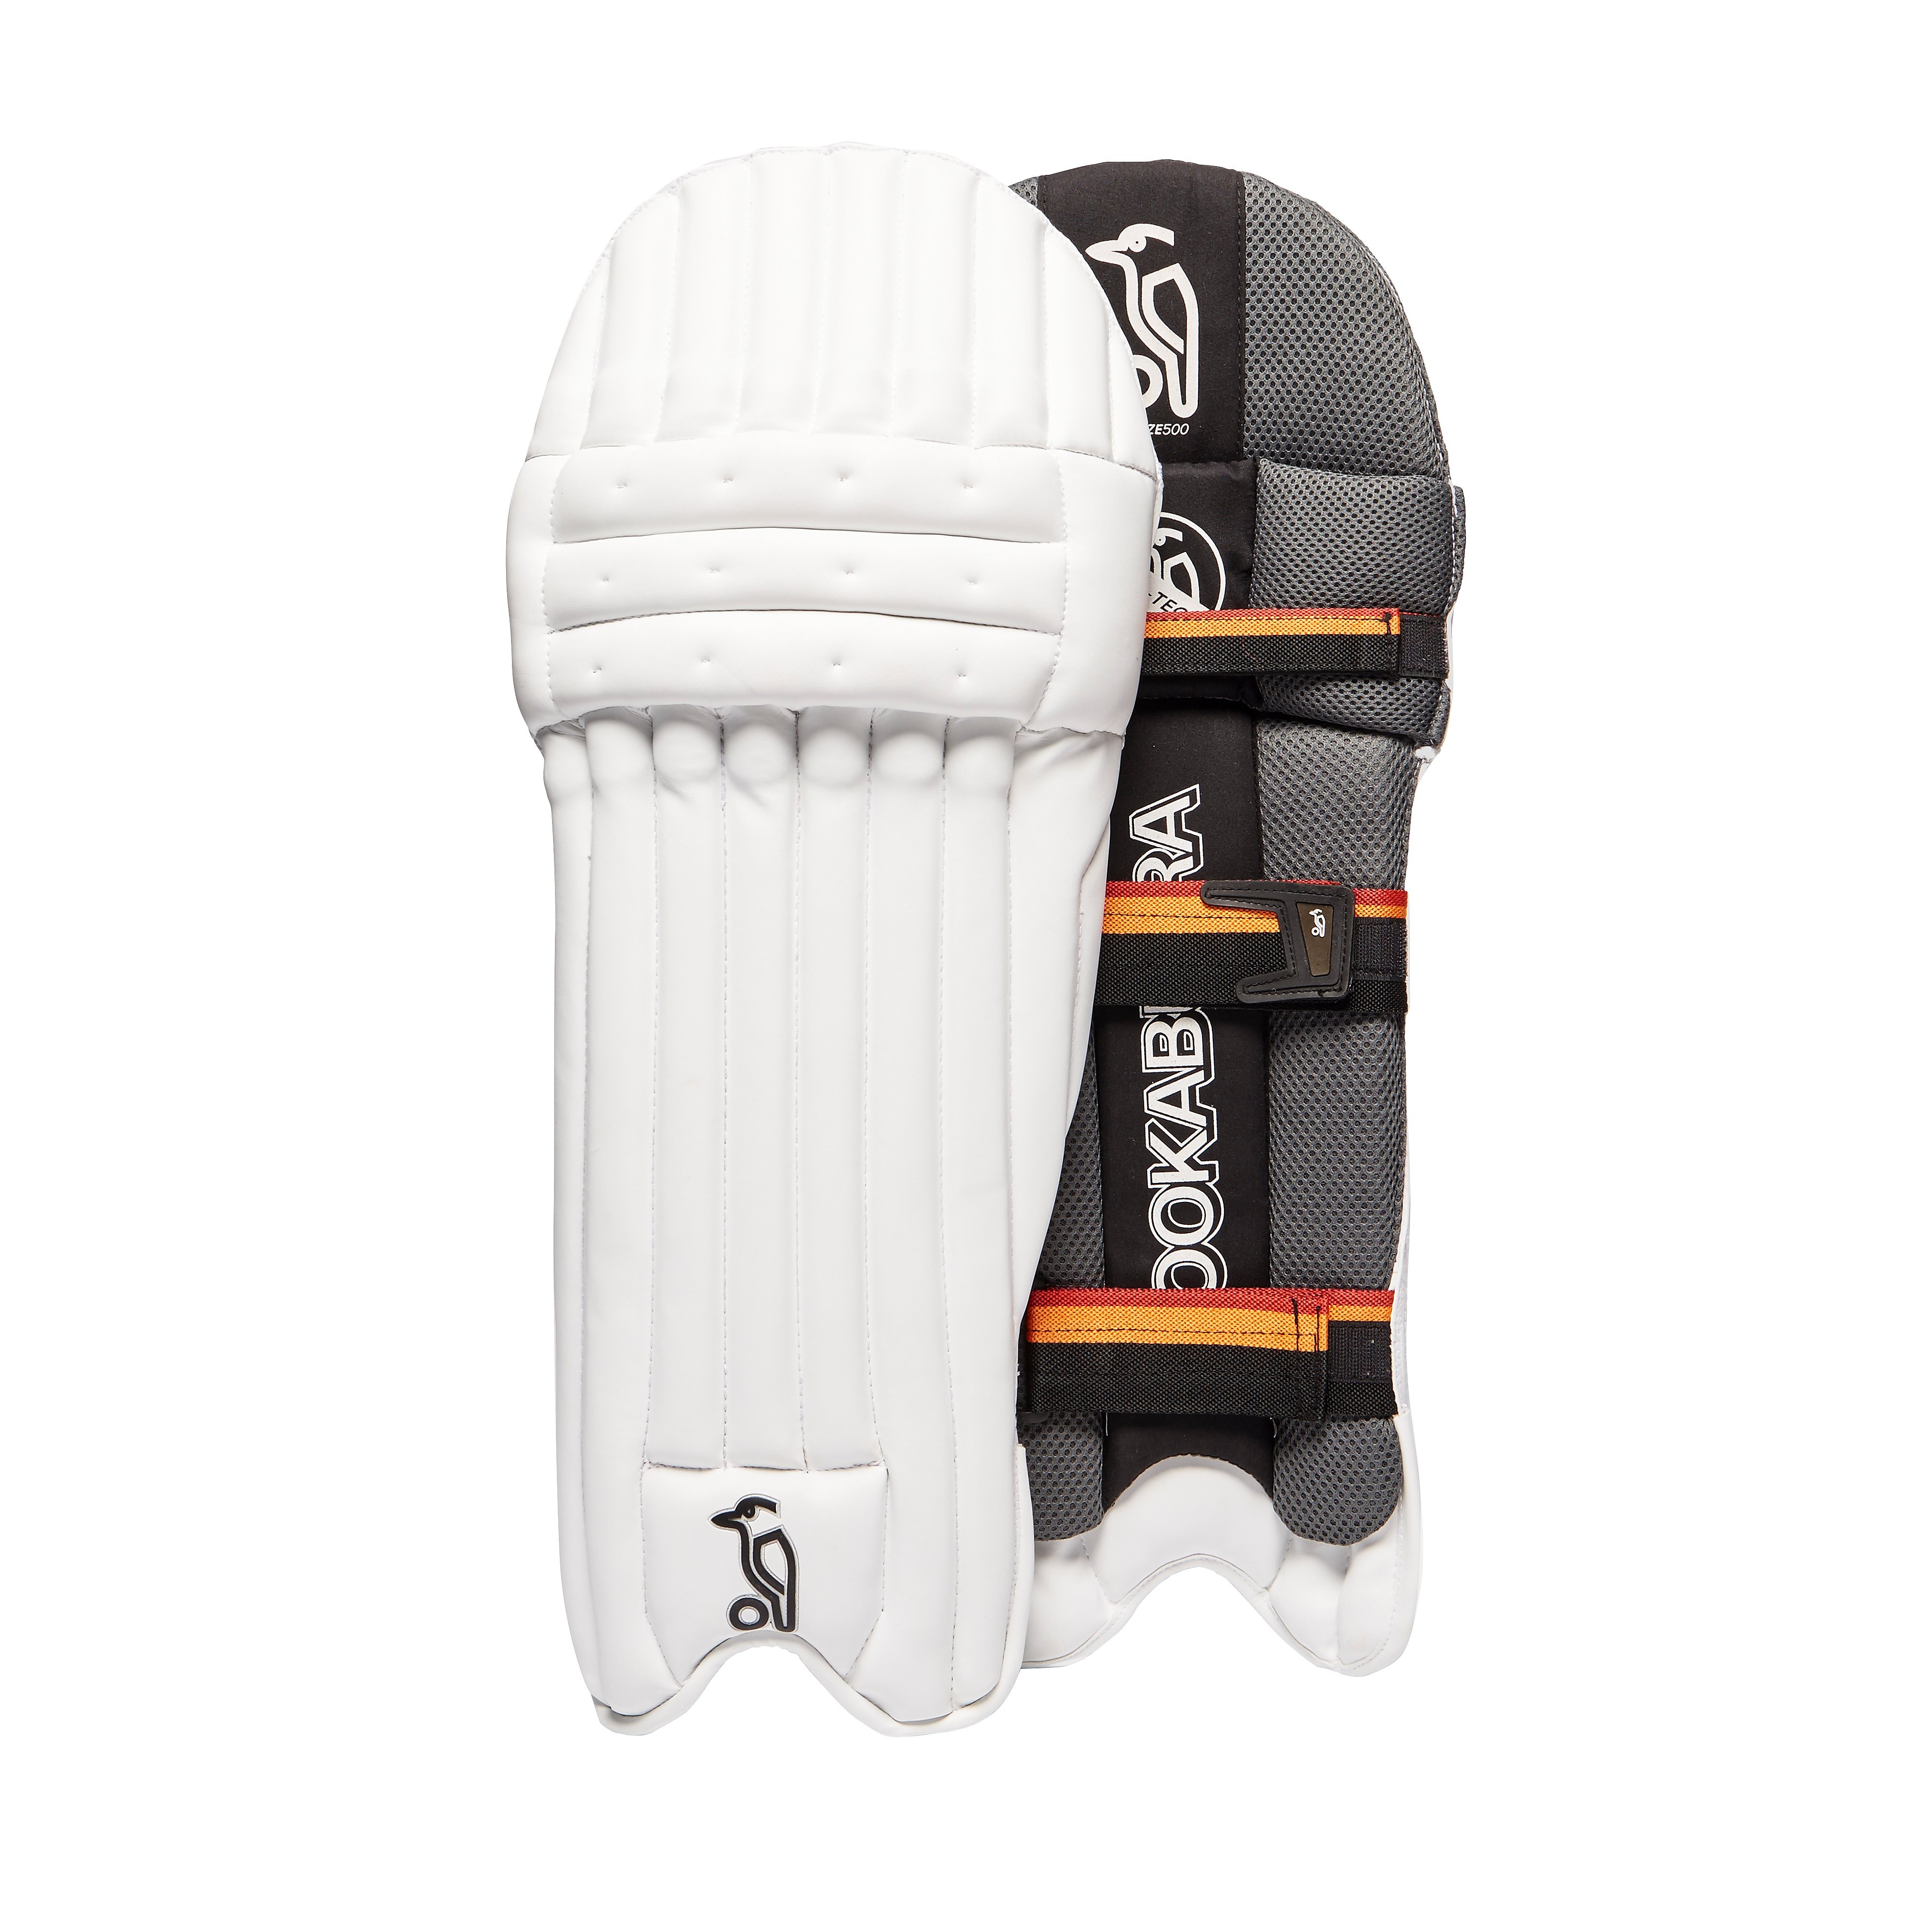 Kookaburra Blaze 500 Junior Batting Pads